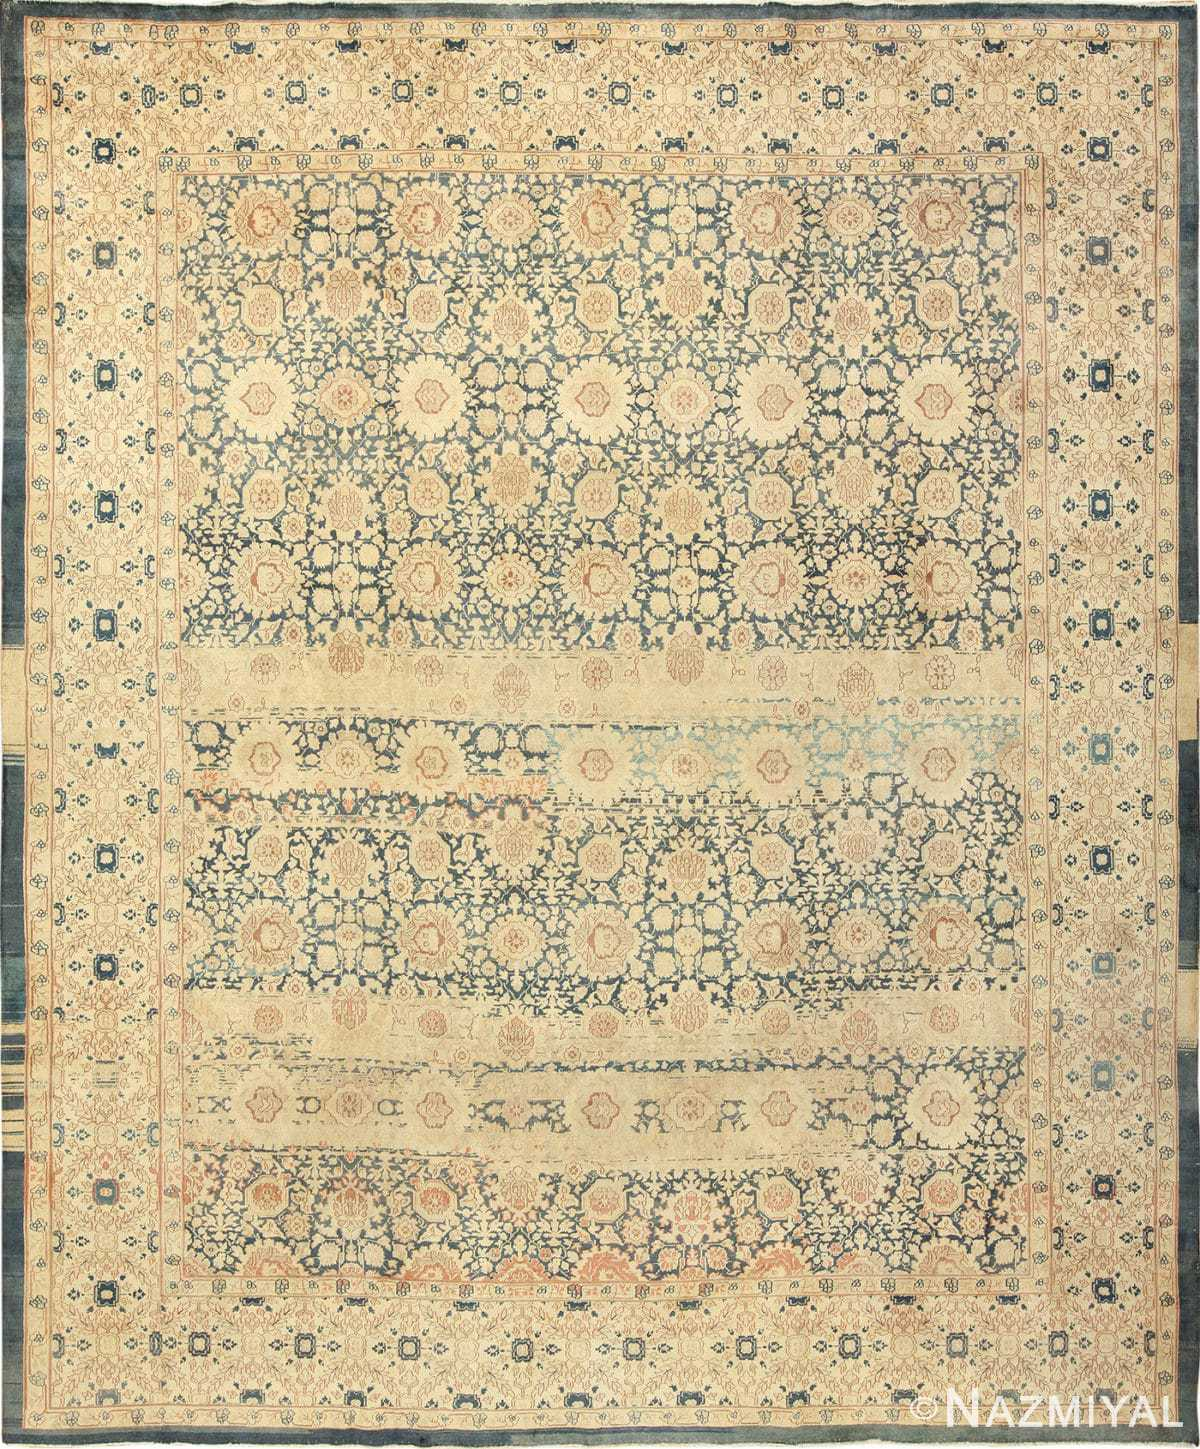 Antique Light Blue Color Persian Tabriz Rug 49714 by Nazmiyal